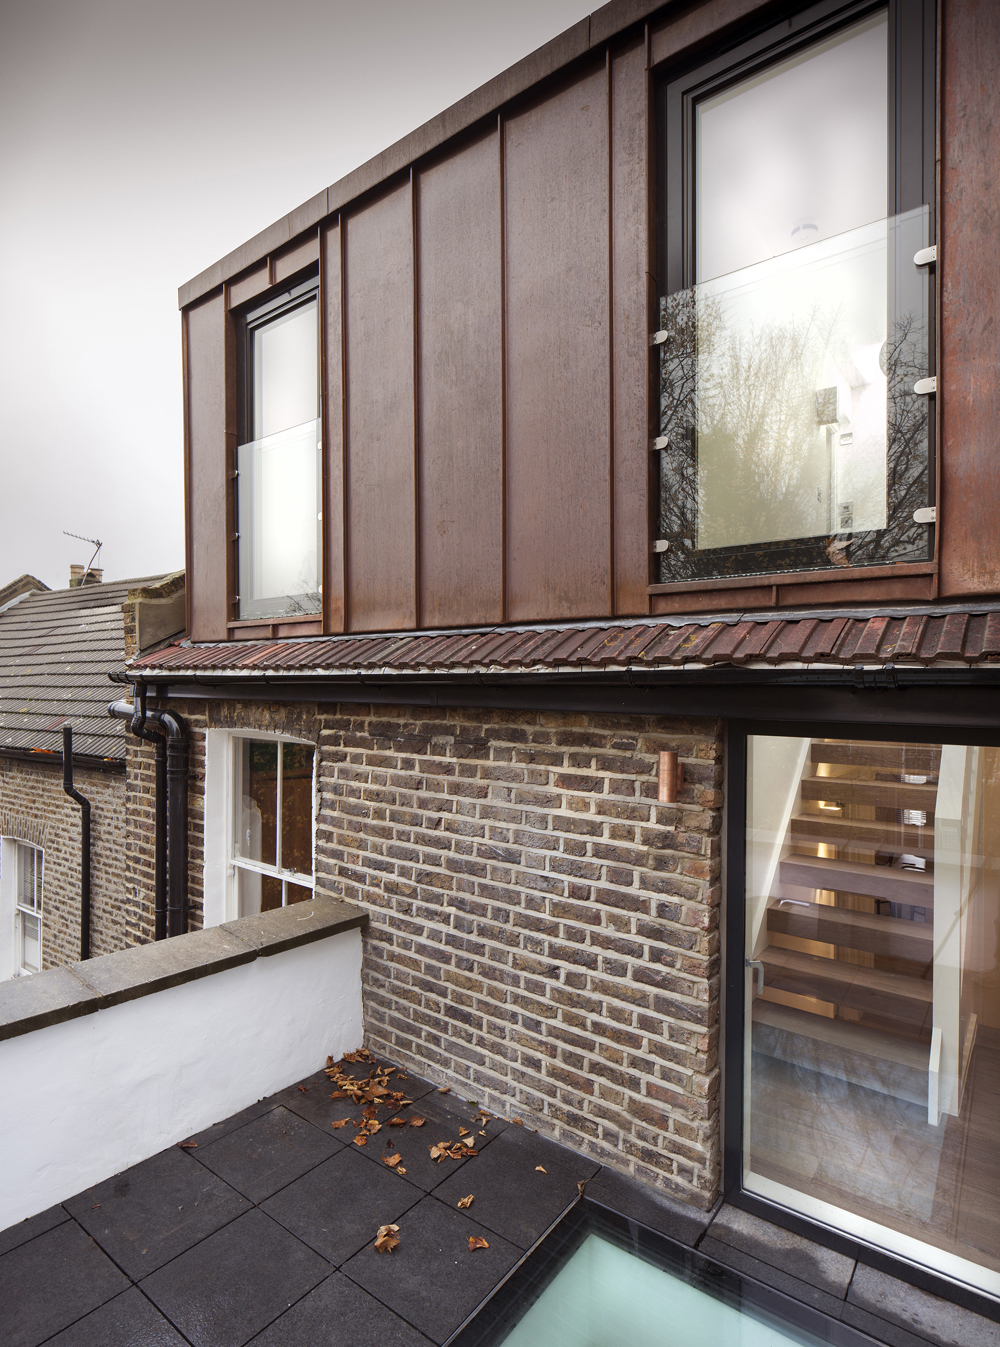 Reighton Road: Designed by  Poulsom Middlehurst  and Built by  GJ Design + Build